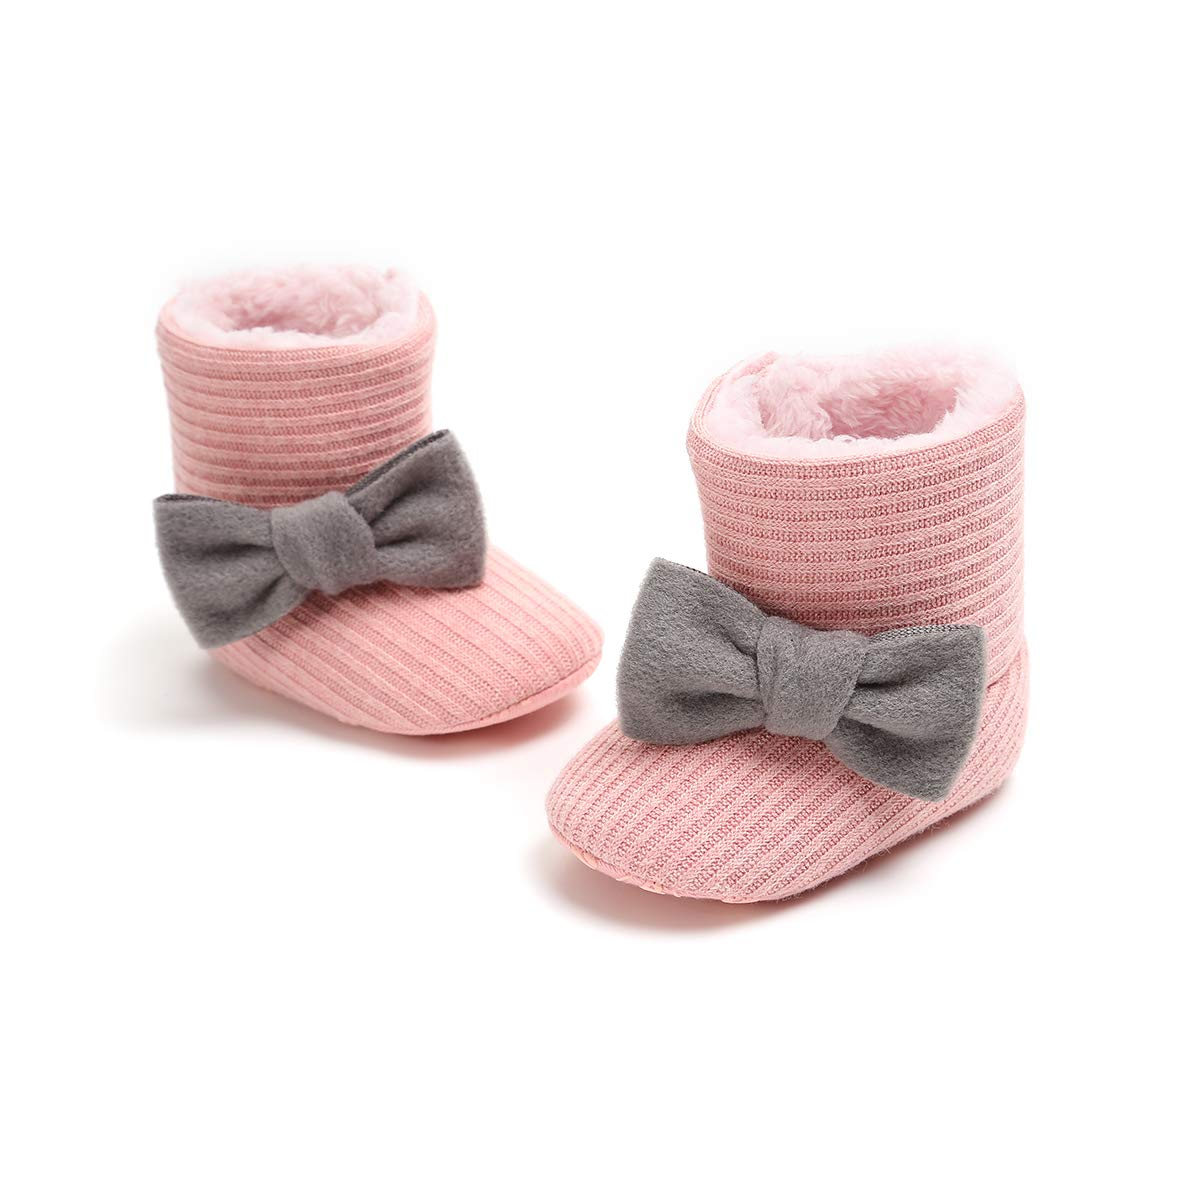 One Persent Newborn Baby Boys Girls Bowknot Snow Boot Winter Warm Soft Prewalker Crib Shoes